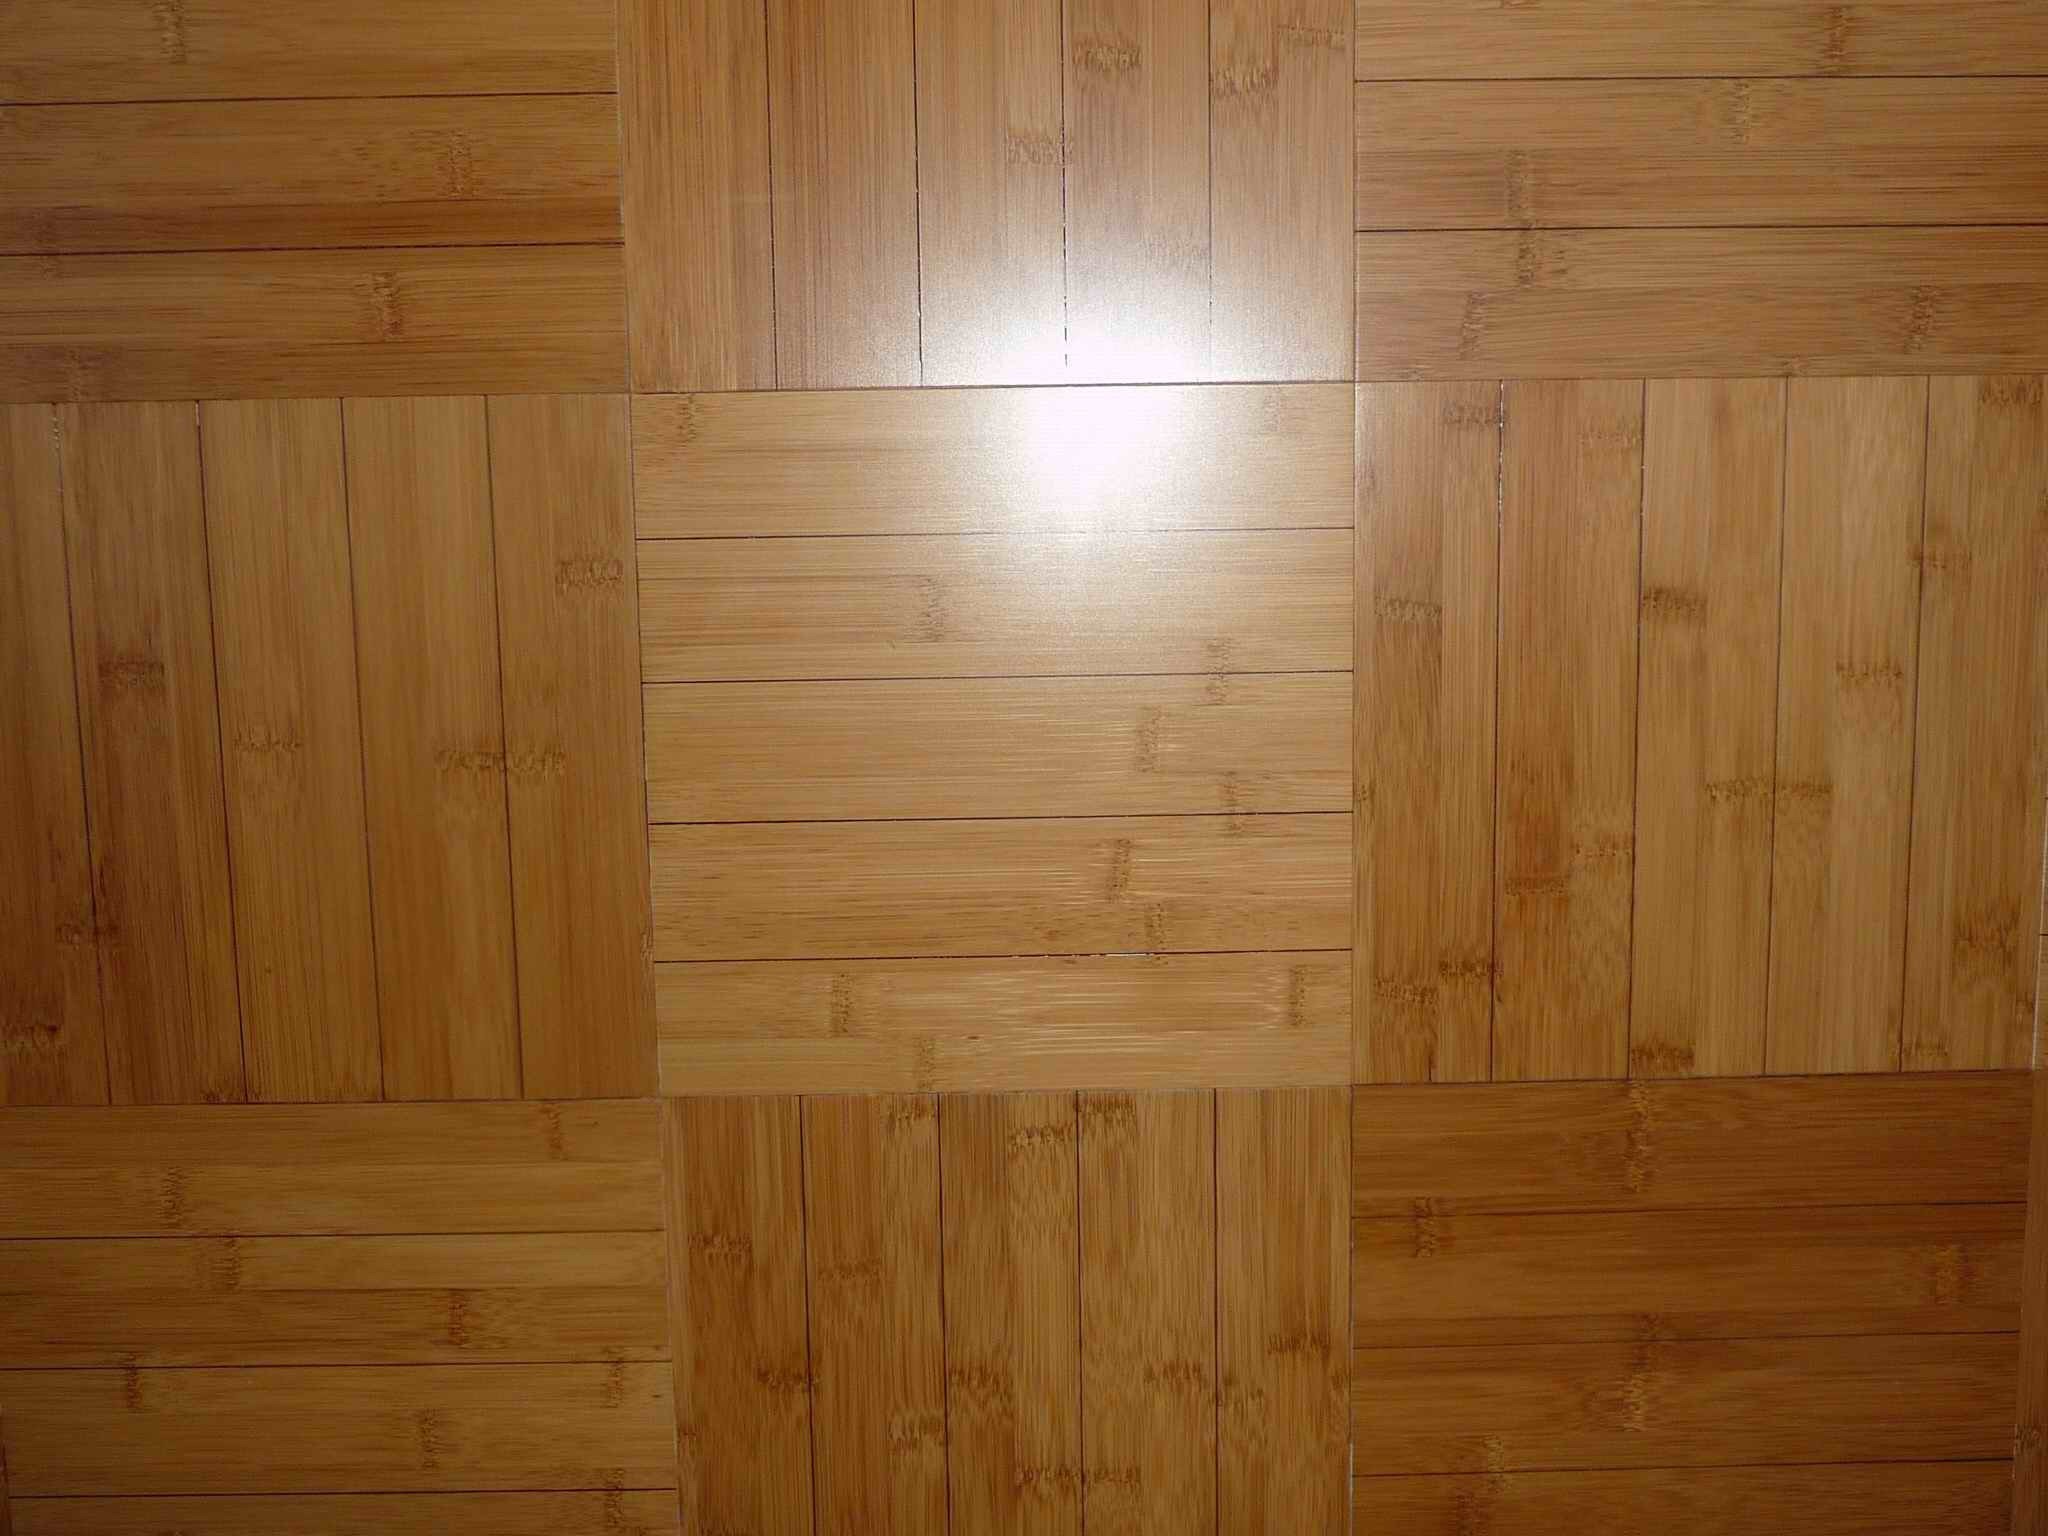 Hardwood flooring home depot flooring ideas home for Home flooring